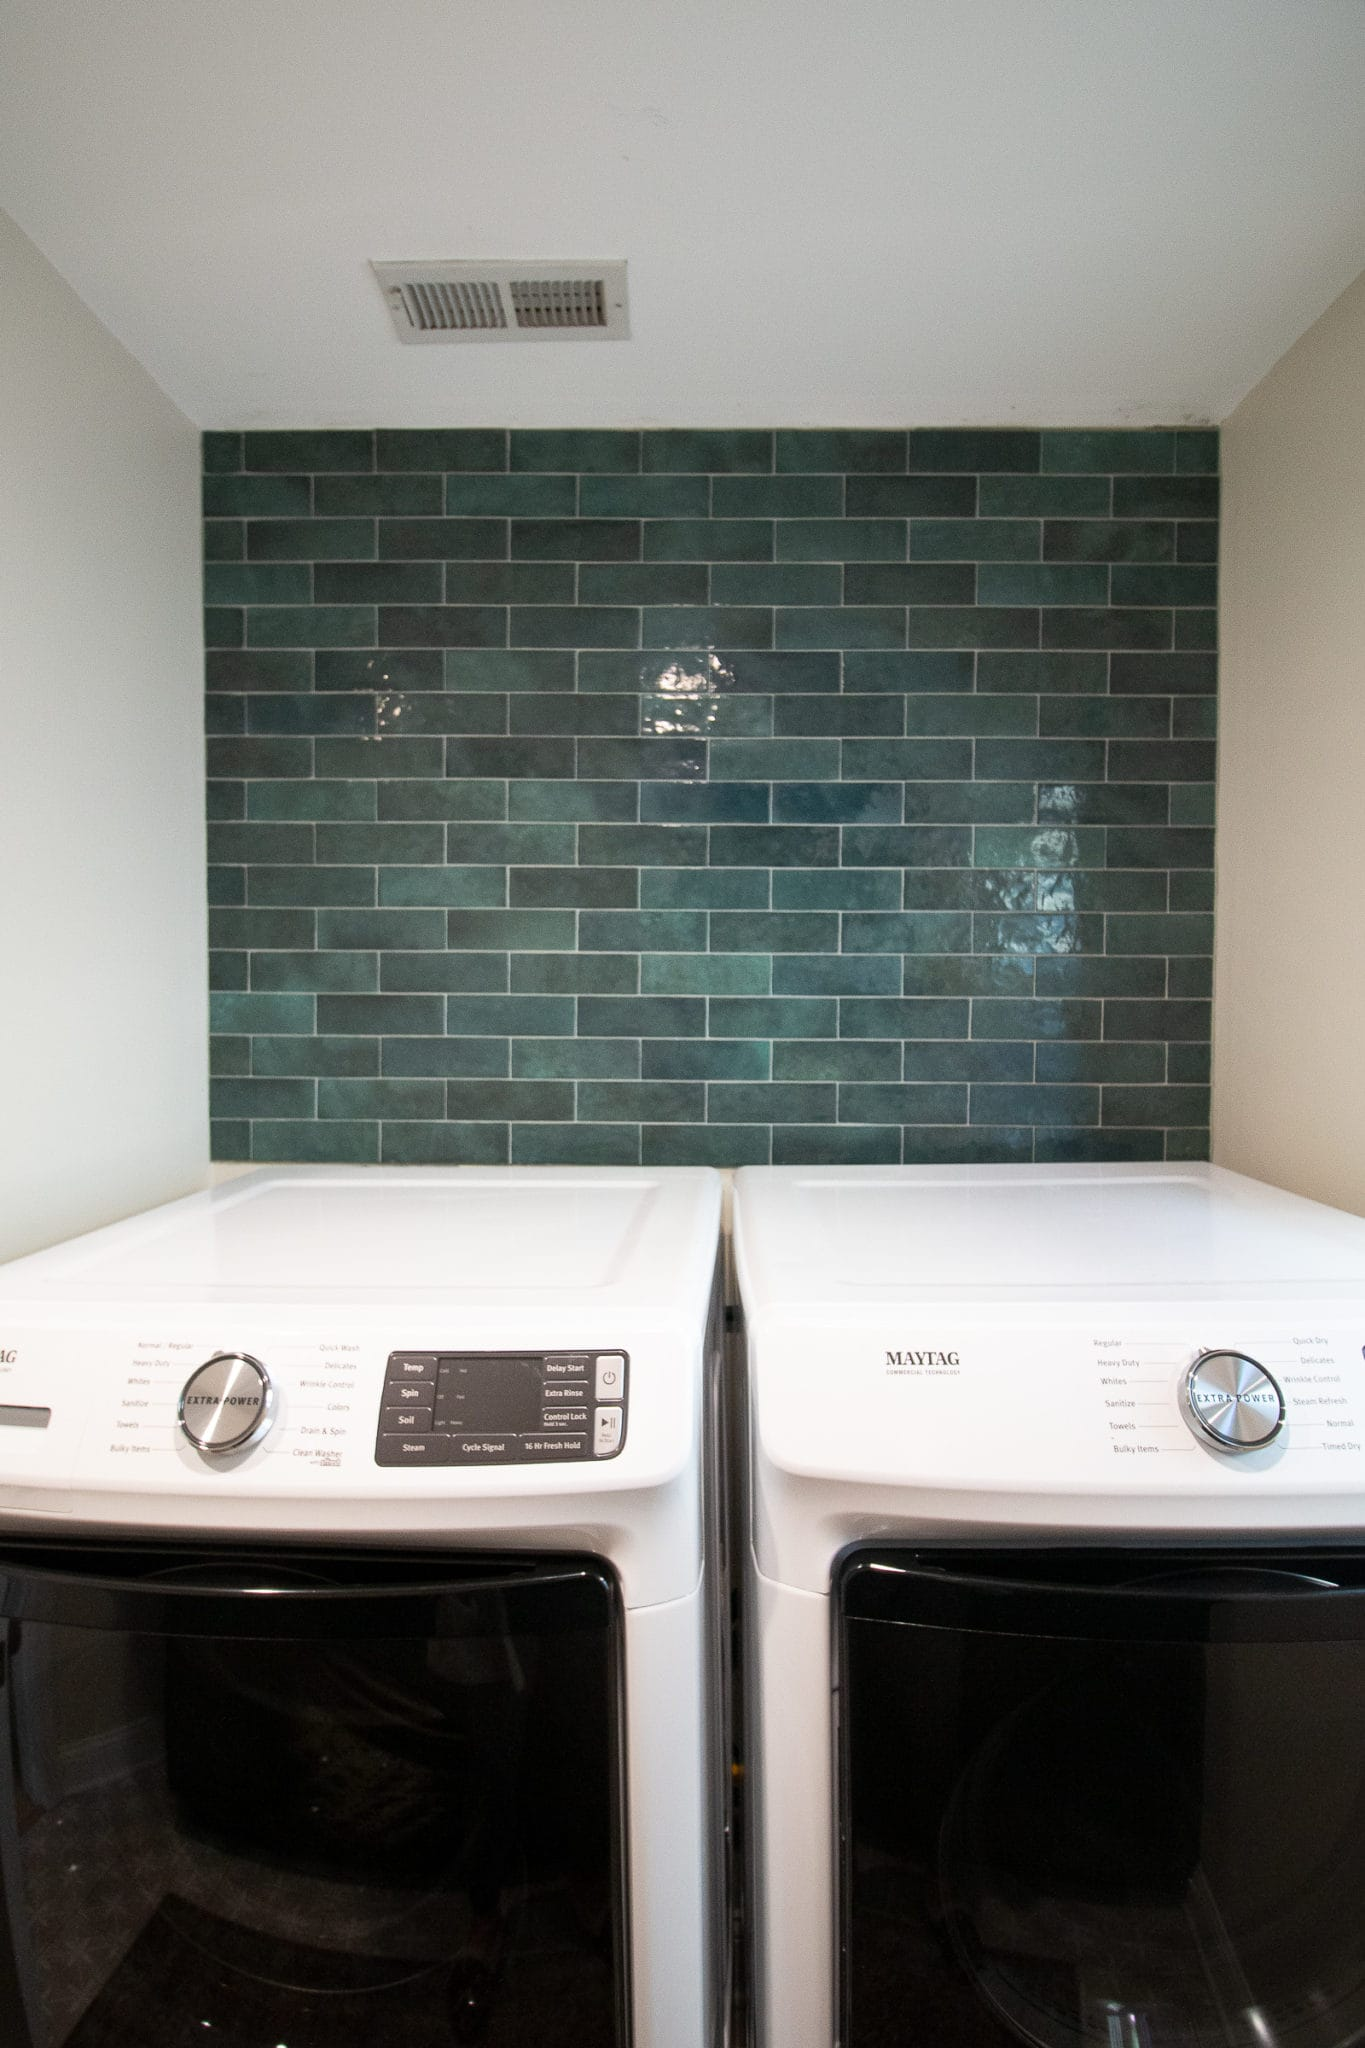 Adding a green tile backsplash to our laundry room